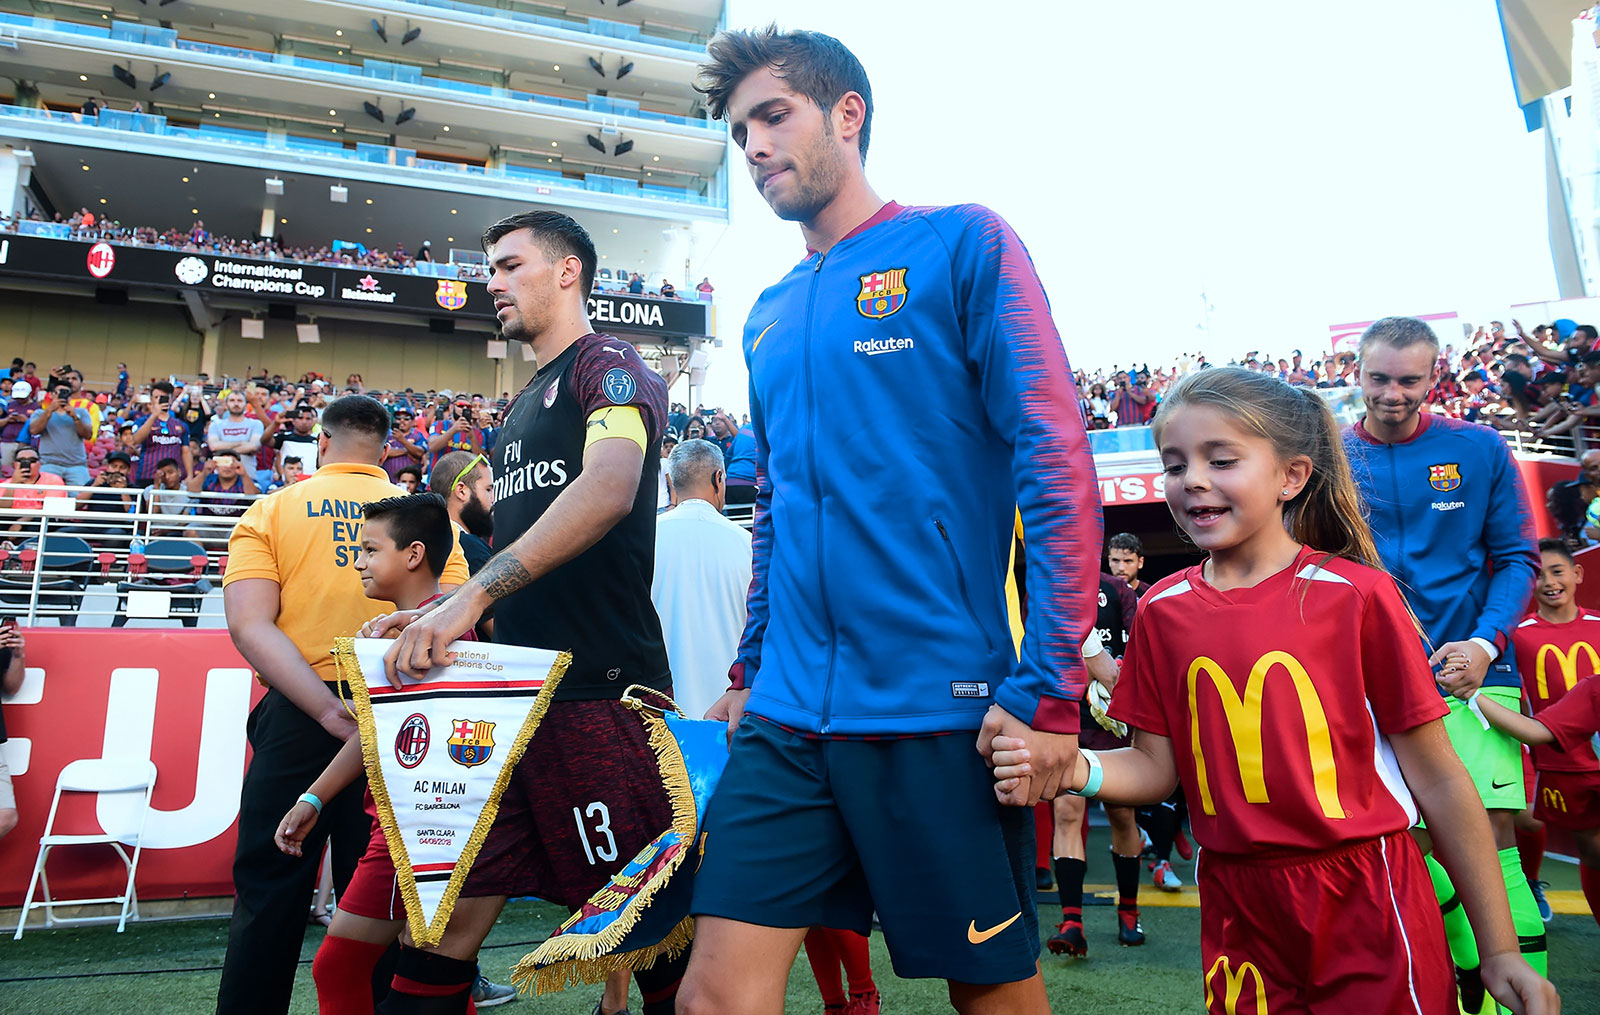 Alessio Romagnoli and Sergi Roberto before Barcelona-Milan at Levi's Stadium on August 5, 2018. (FREDERIC J. BROWN/AFP/Getty Images)